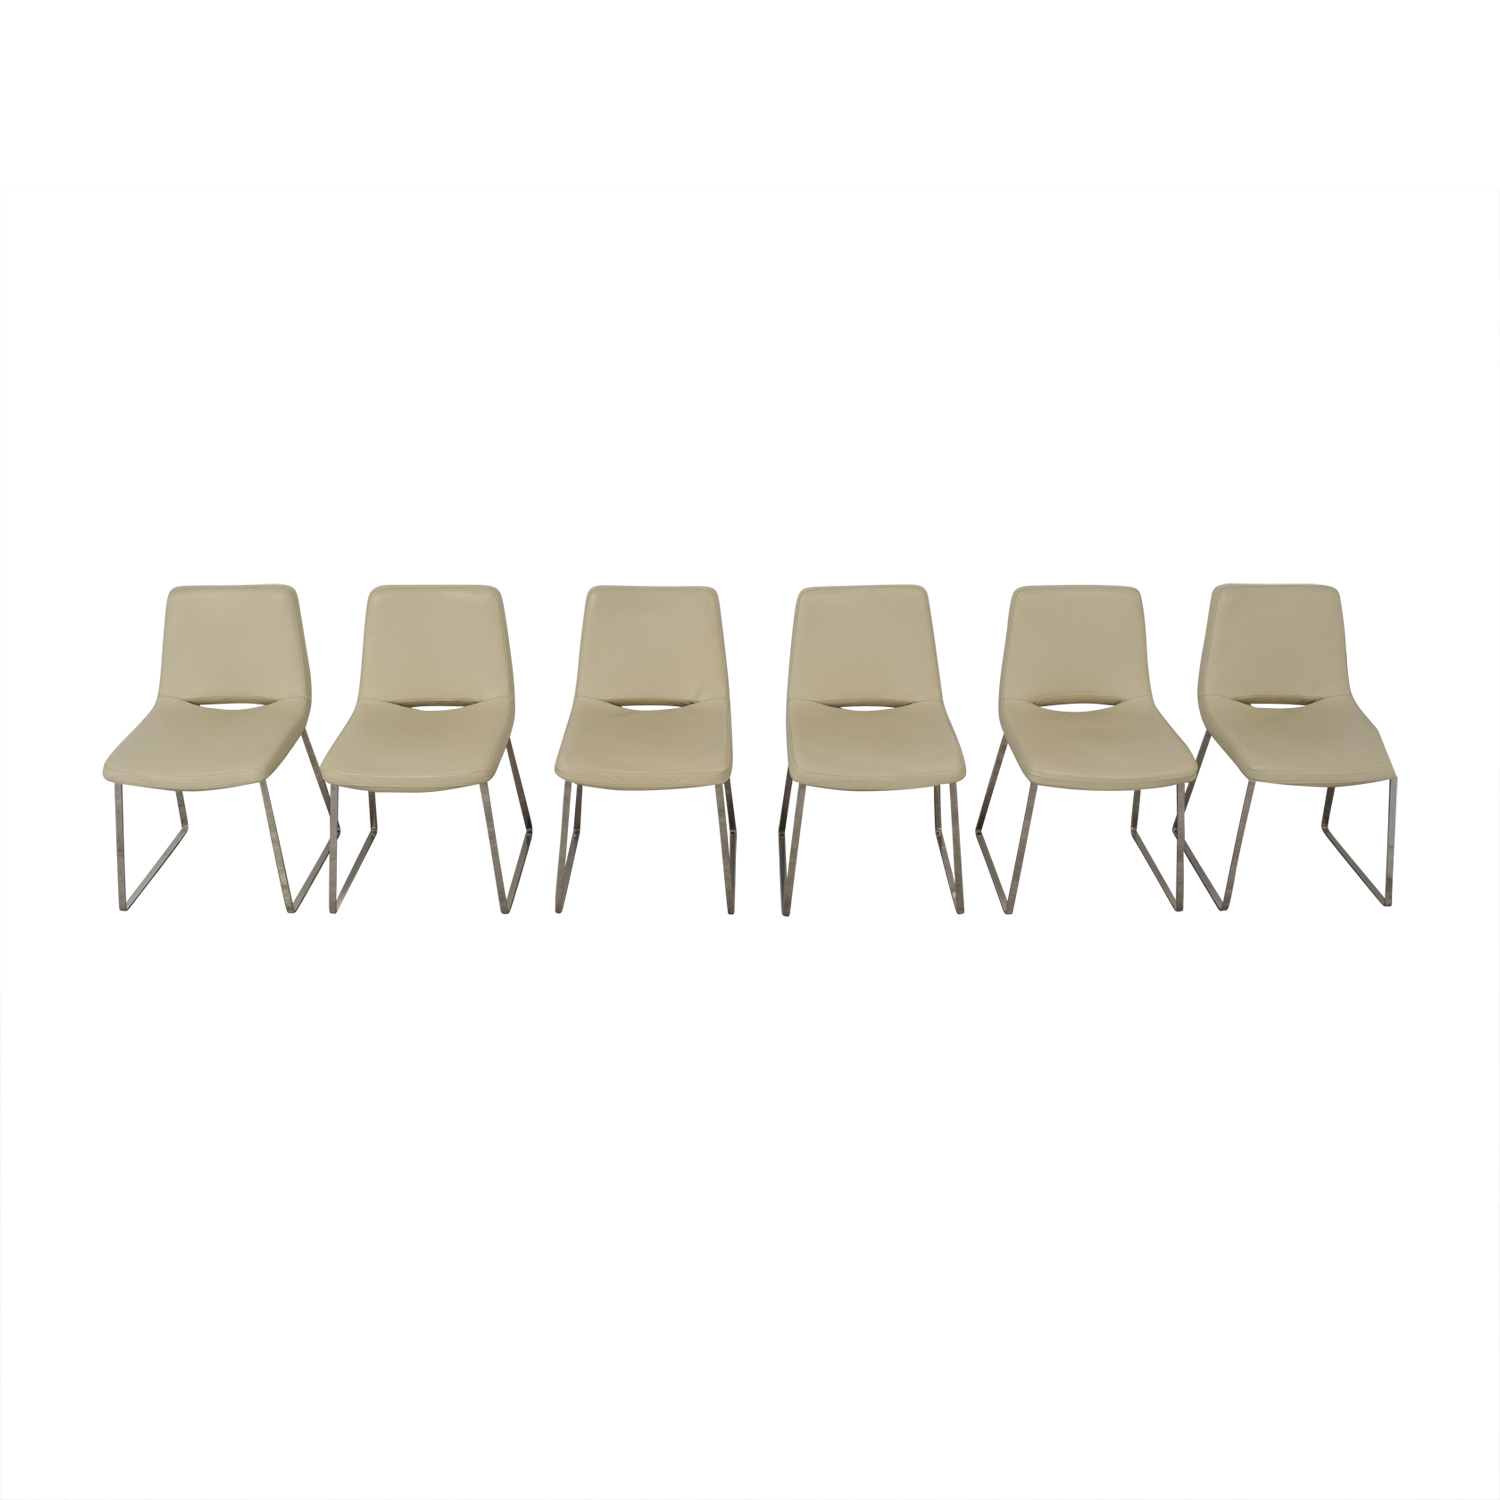 shop Tui Lifestyle Leather Dining Chair Set Tui Lifestyle Chairs